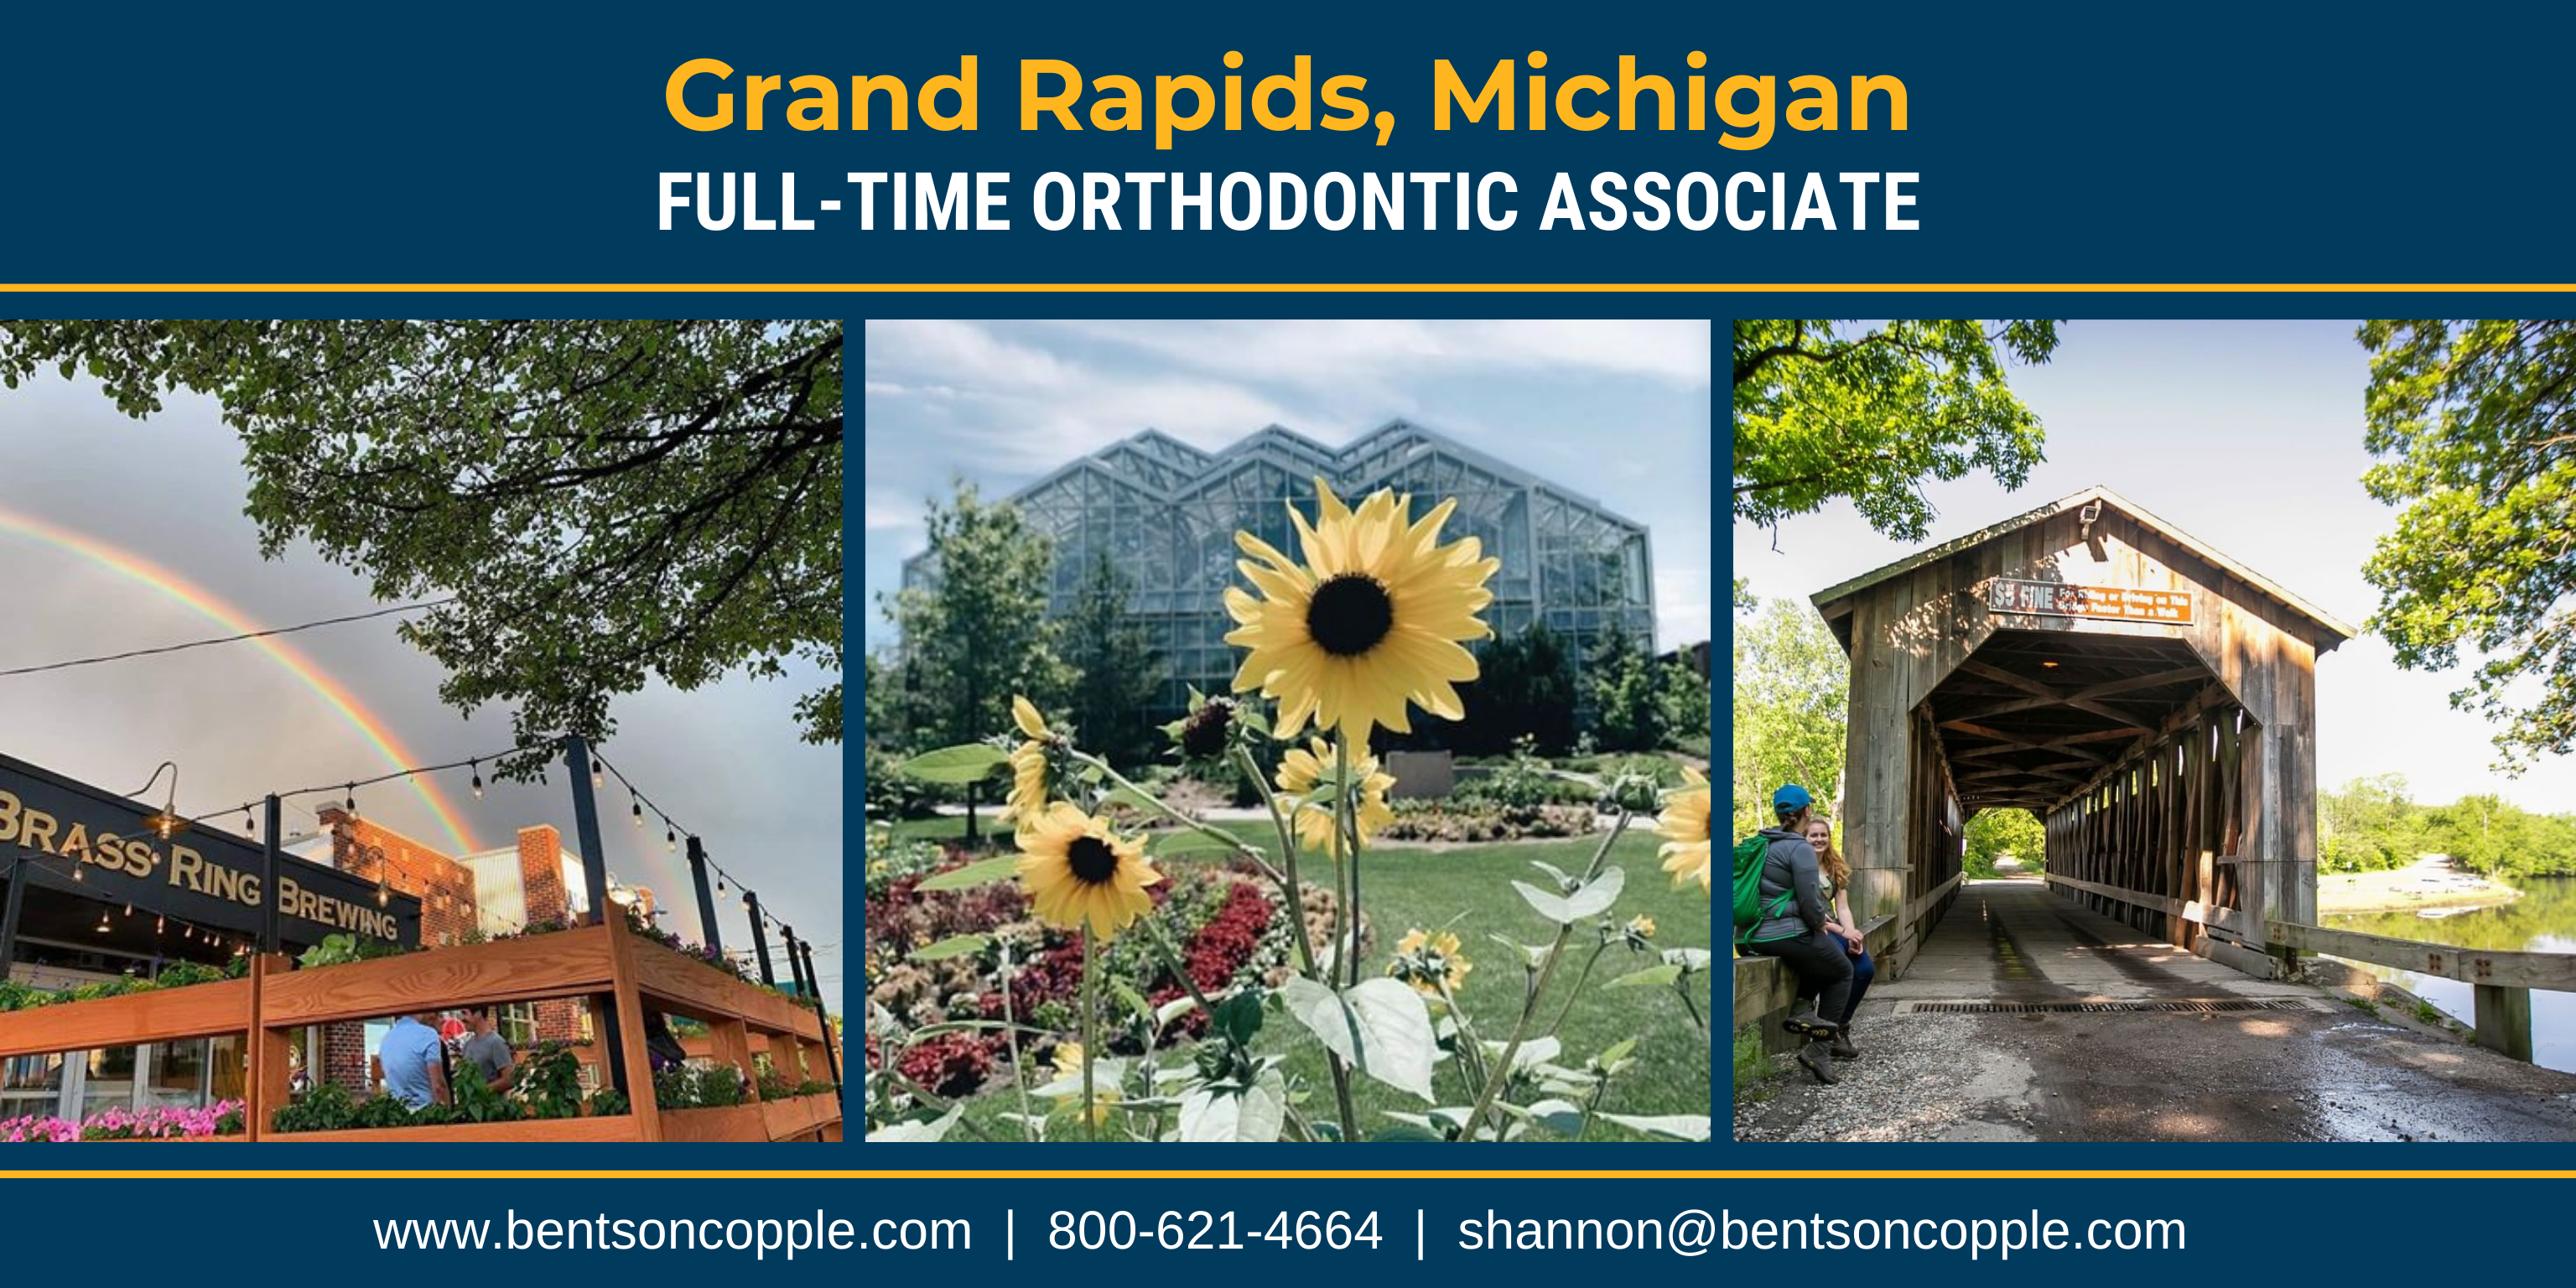 Seeking a full-time orthodontic associate in Grand Rapids, Michigan